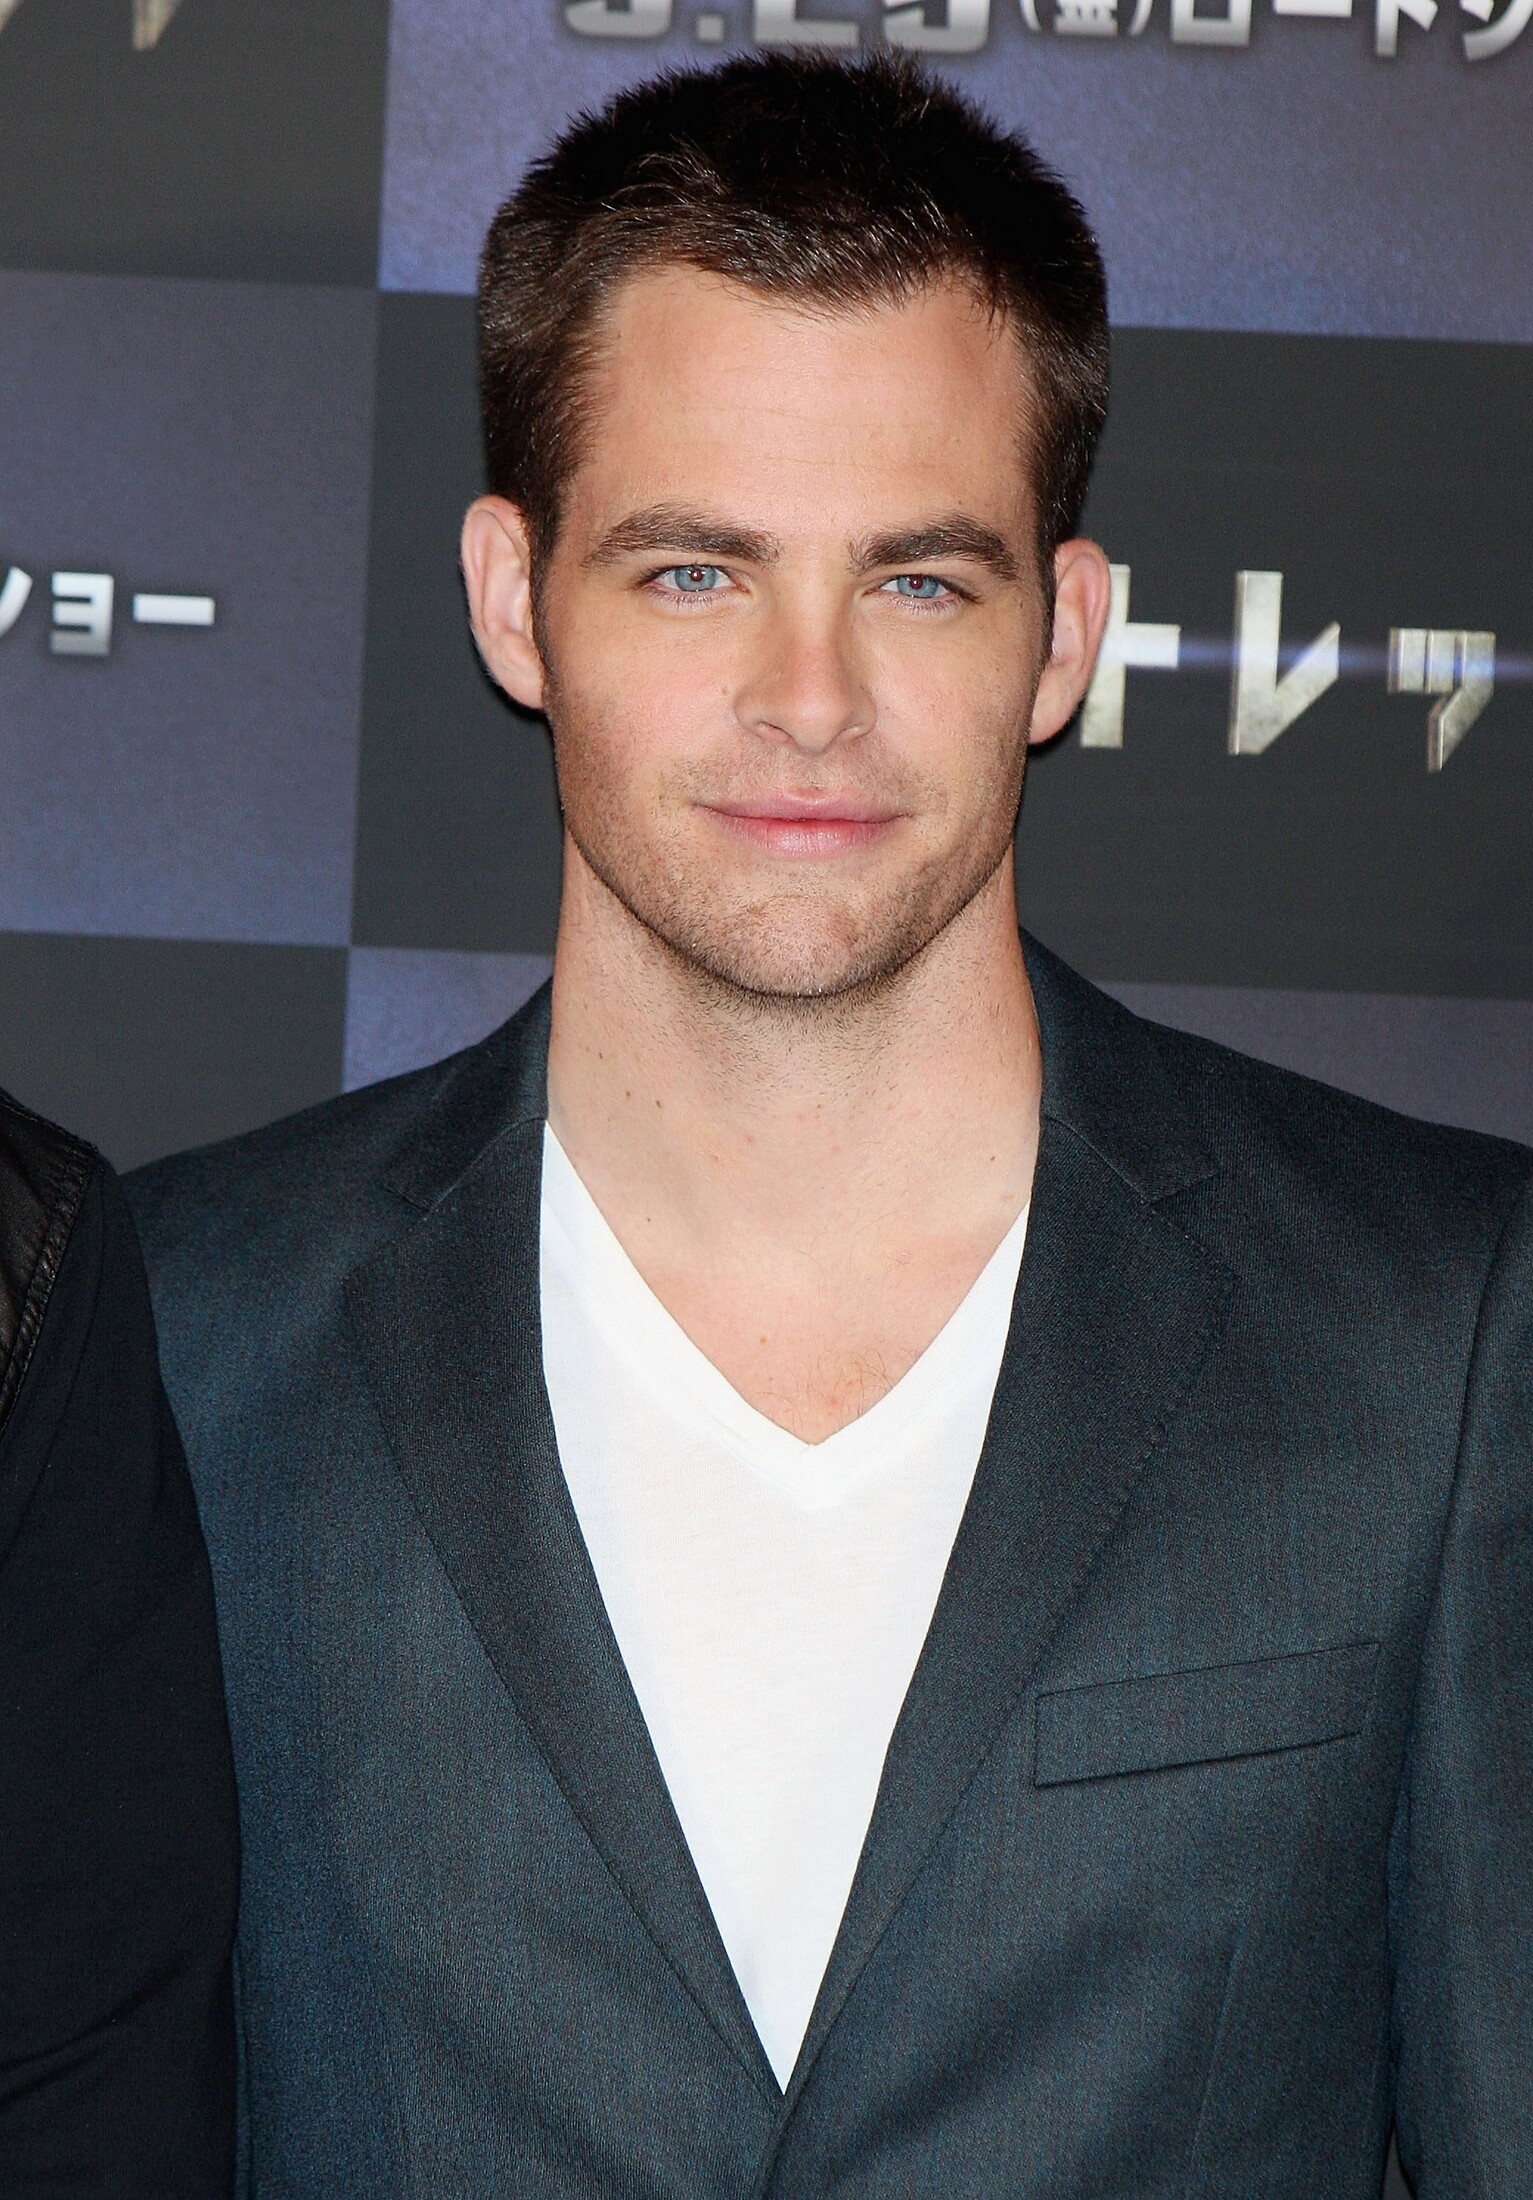 who is chris pine dating